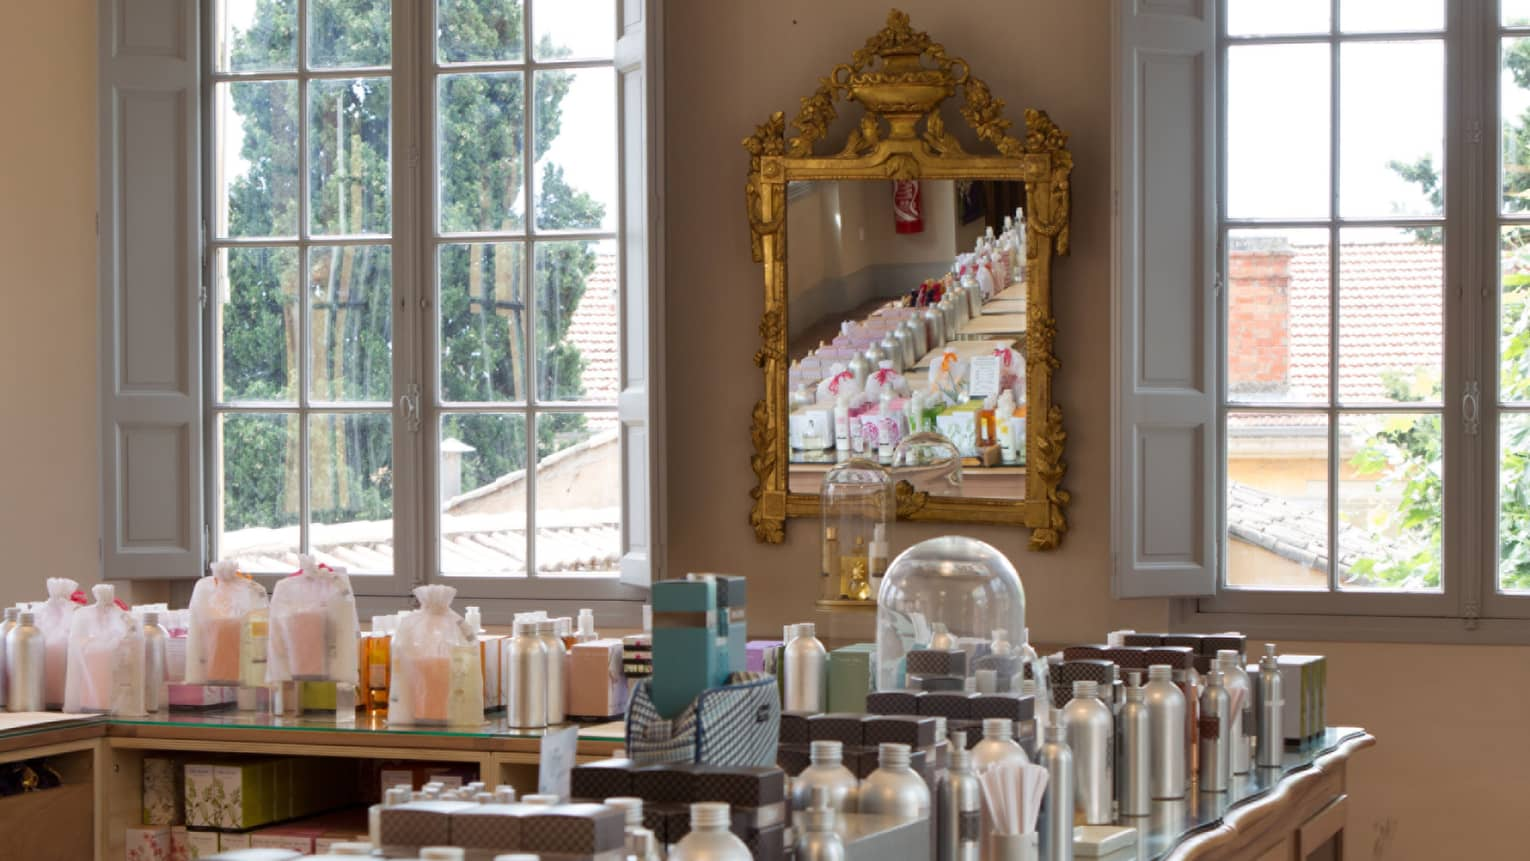 Fragonard parfumerie with fragrance bottles lining table